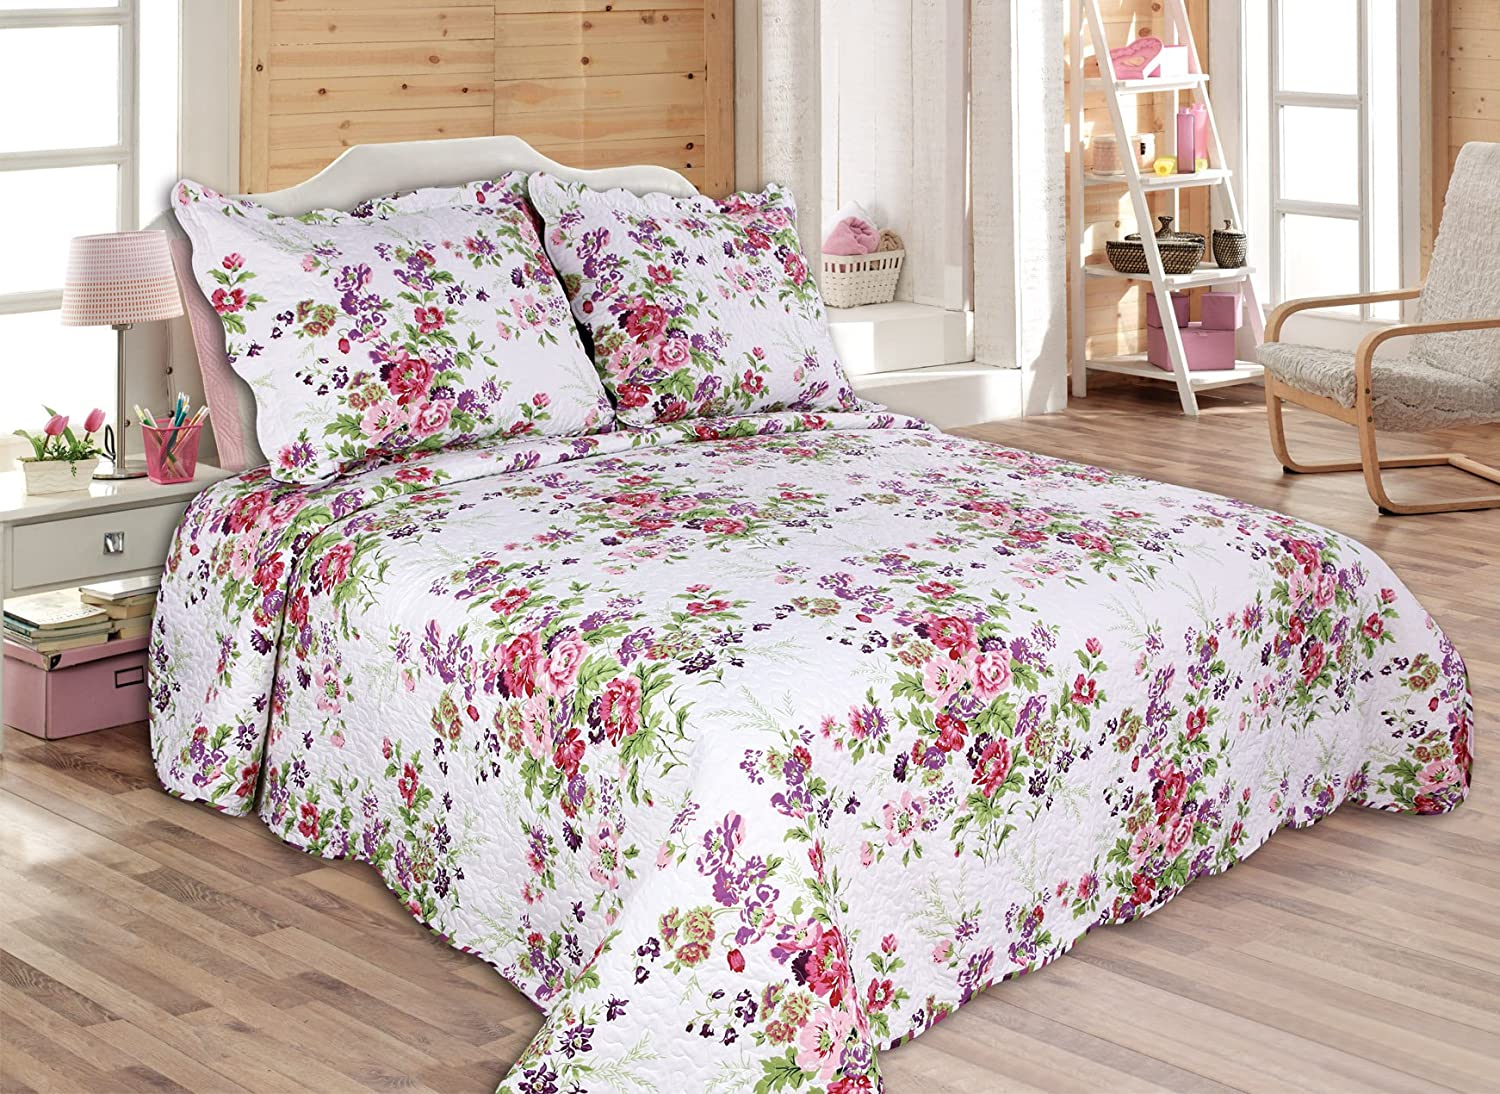 3-piece Reversible coverlet, Quilt Set, bedpread, Full-Queen Size,86